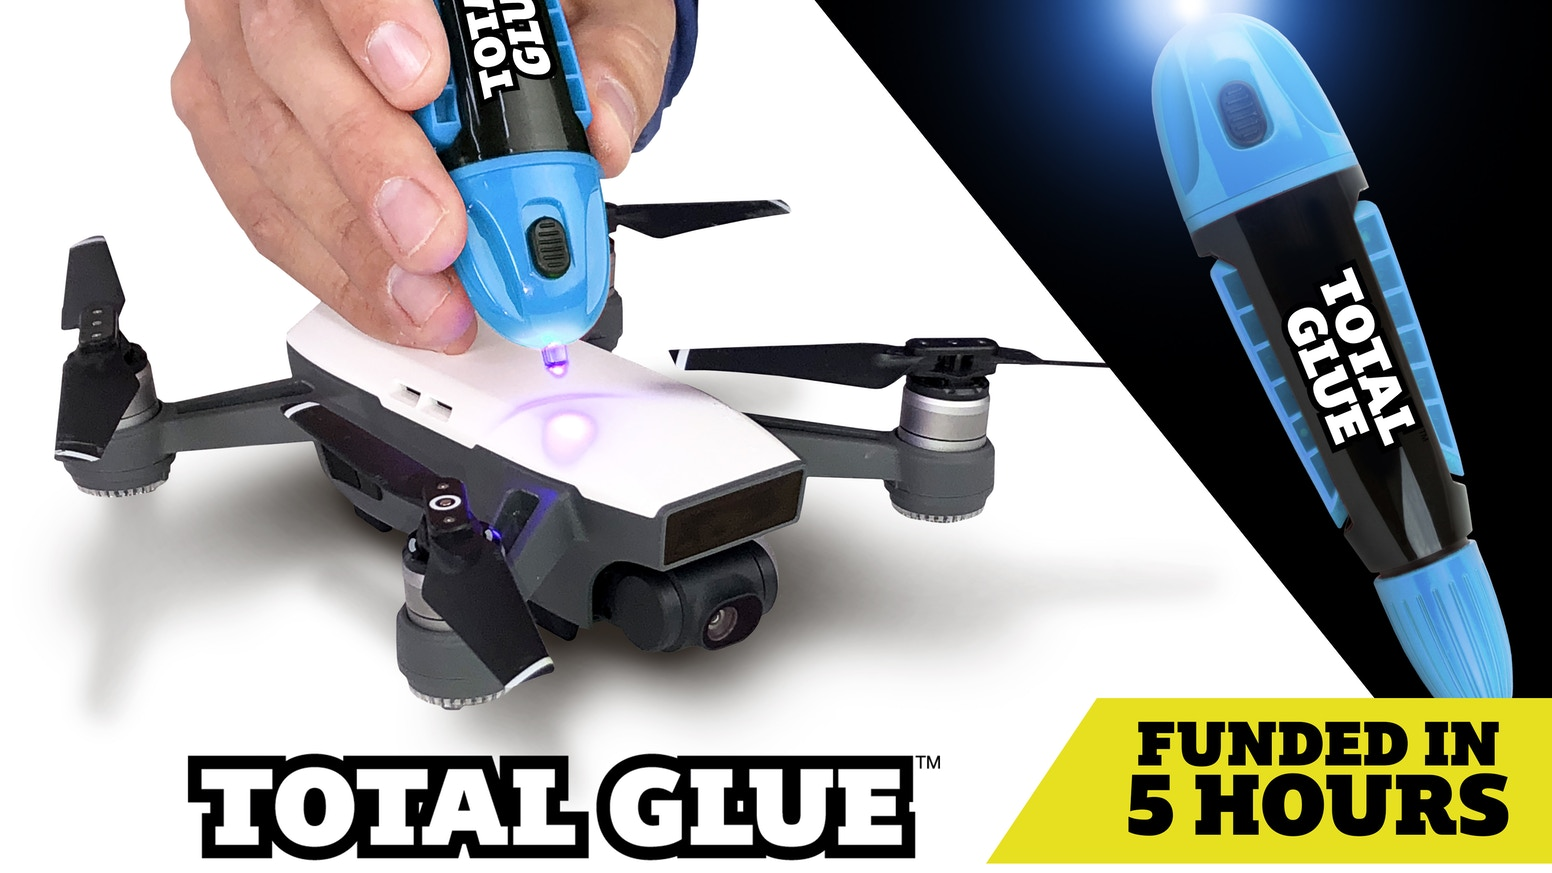 Super glue is dead! Total Glue's light-curing adhesive is 10X FASTER, fills gaps, and makes clean & precise repairs. It does it ALL!